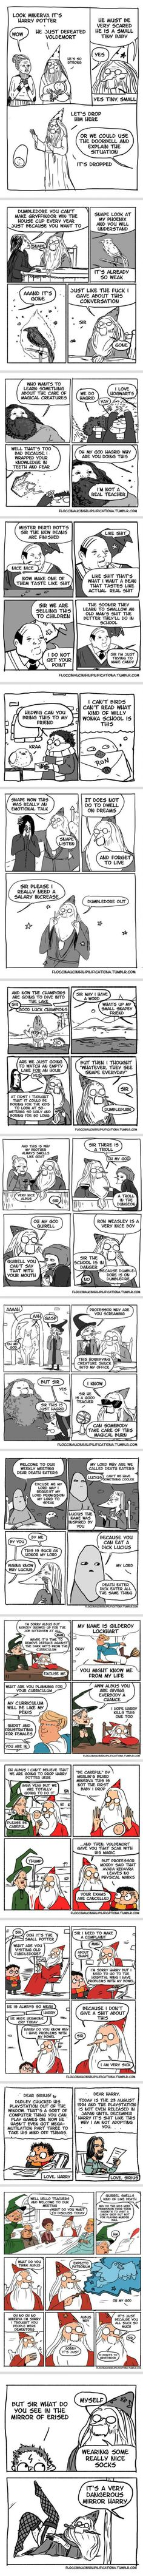 These Hilarious Comics Show How Irresponsible Dumbledore was